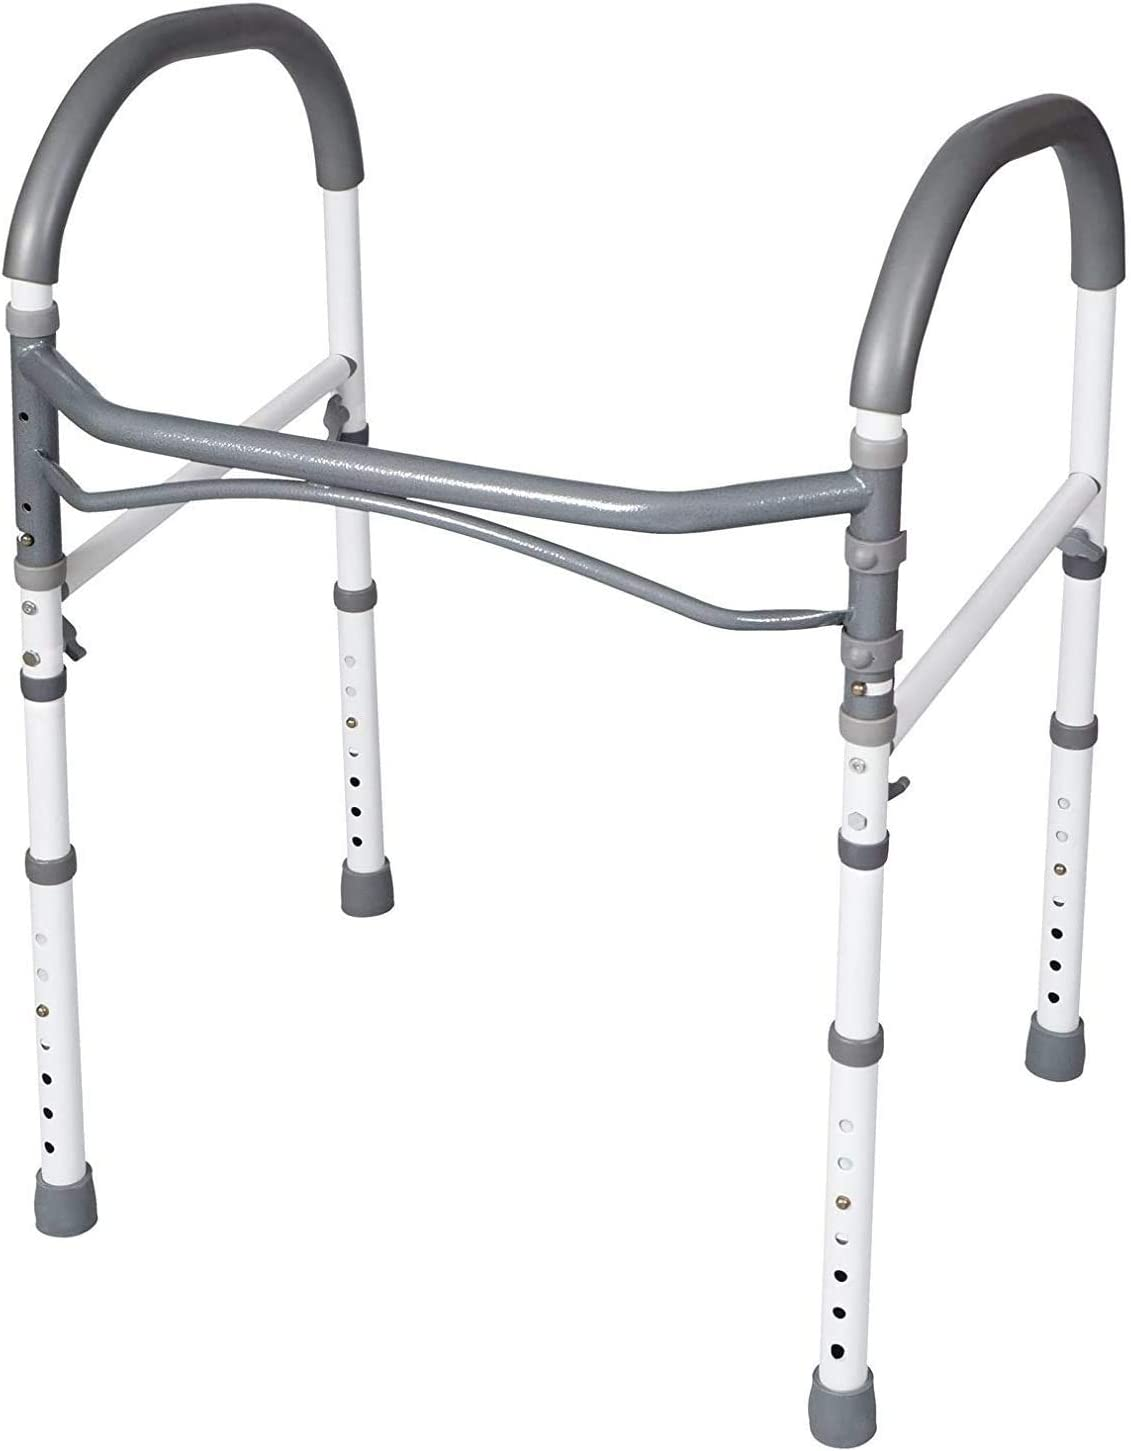 Carex Toilet Safety Rails - Toilet Handles for Elderly and Handicap - Home Health Care Equipment Toilet Safety Frame: Health & Personal Care